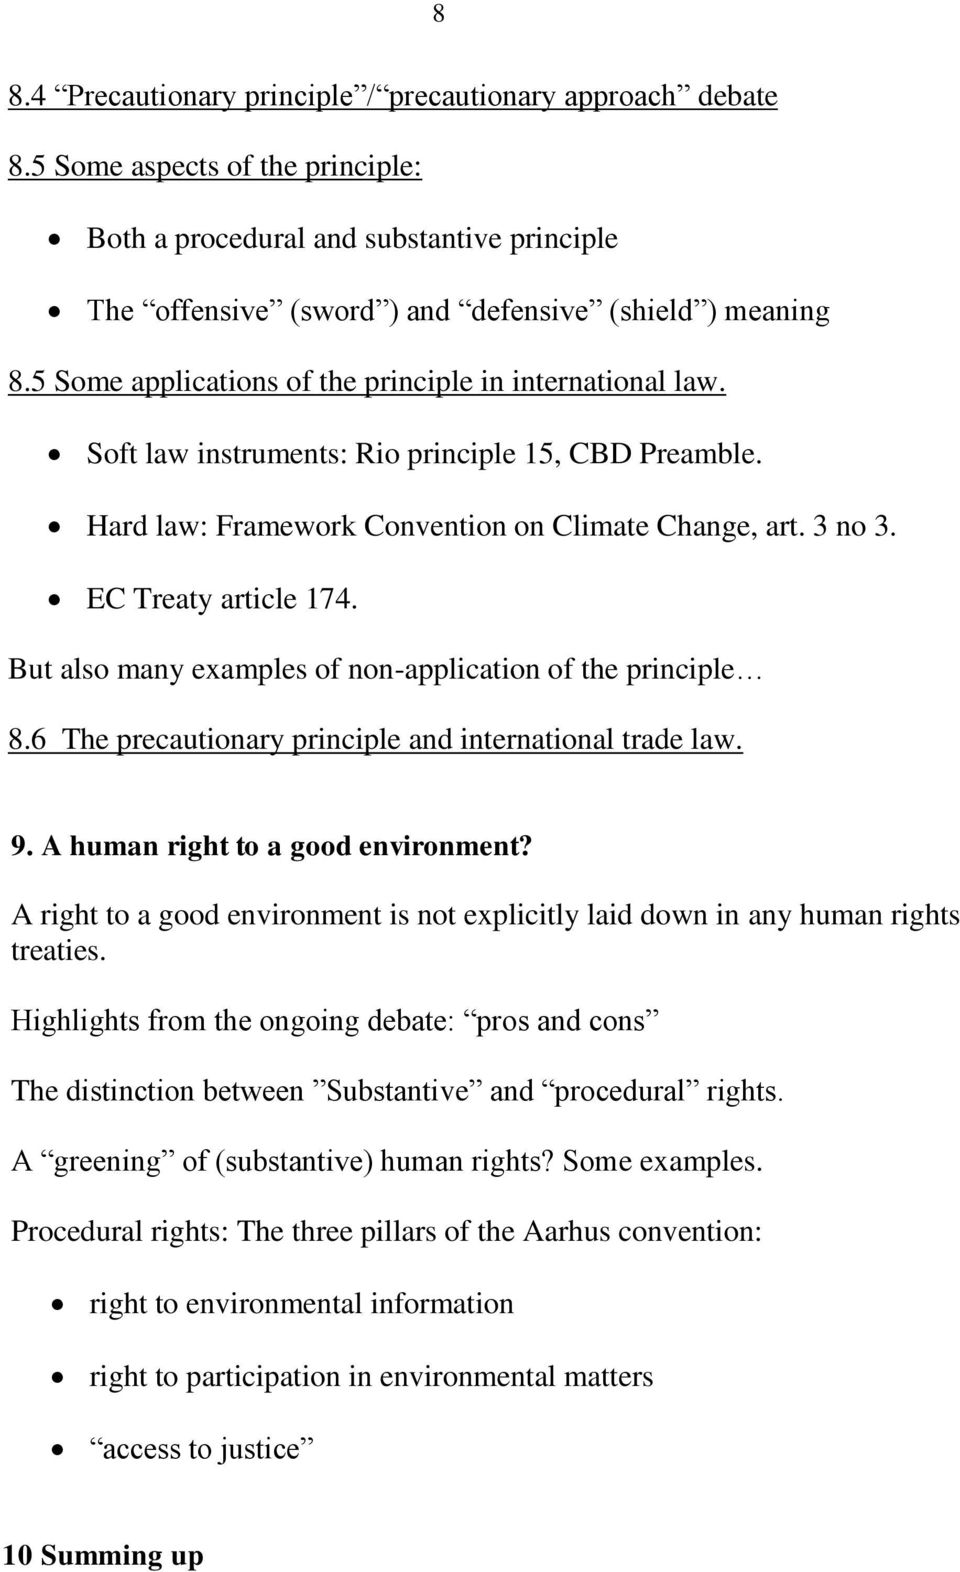 But also many examples of non-application of the principle 8.6 The precautionary principle and international trade law. 9. A human right to a good environment?